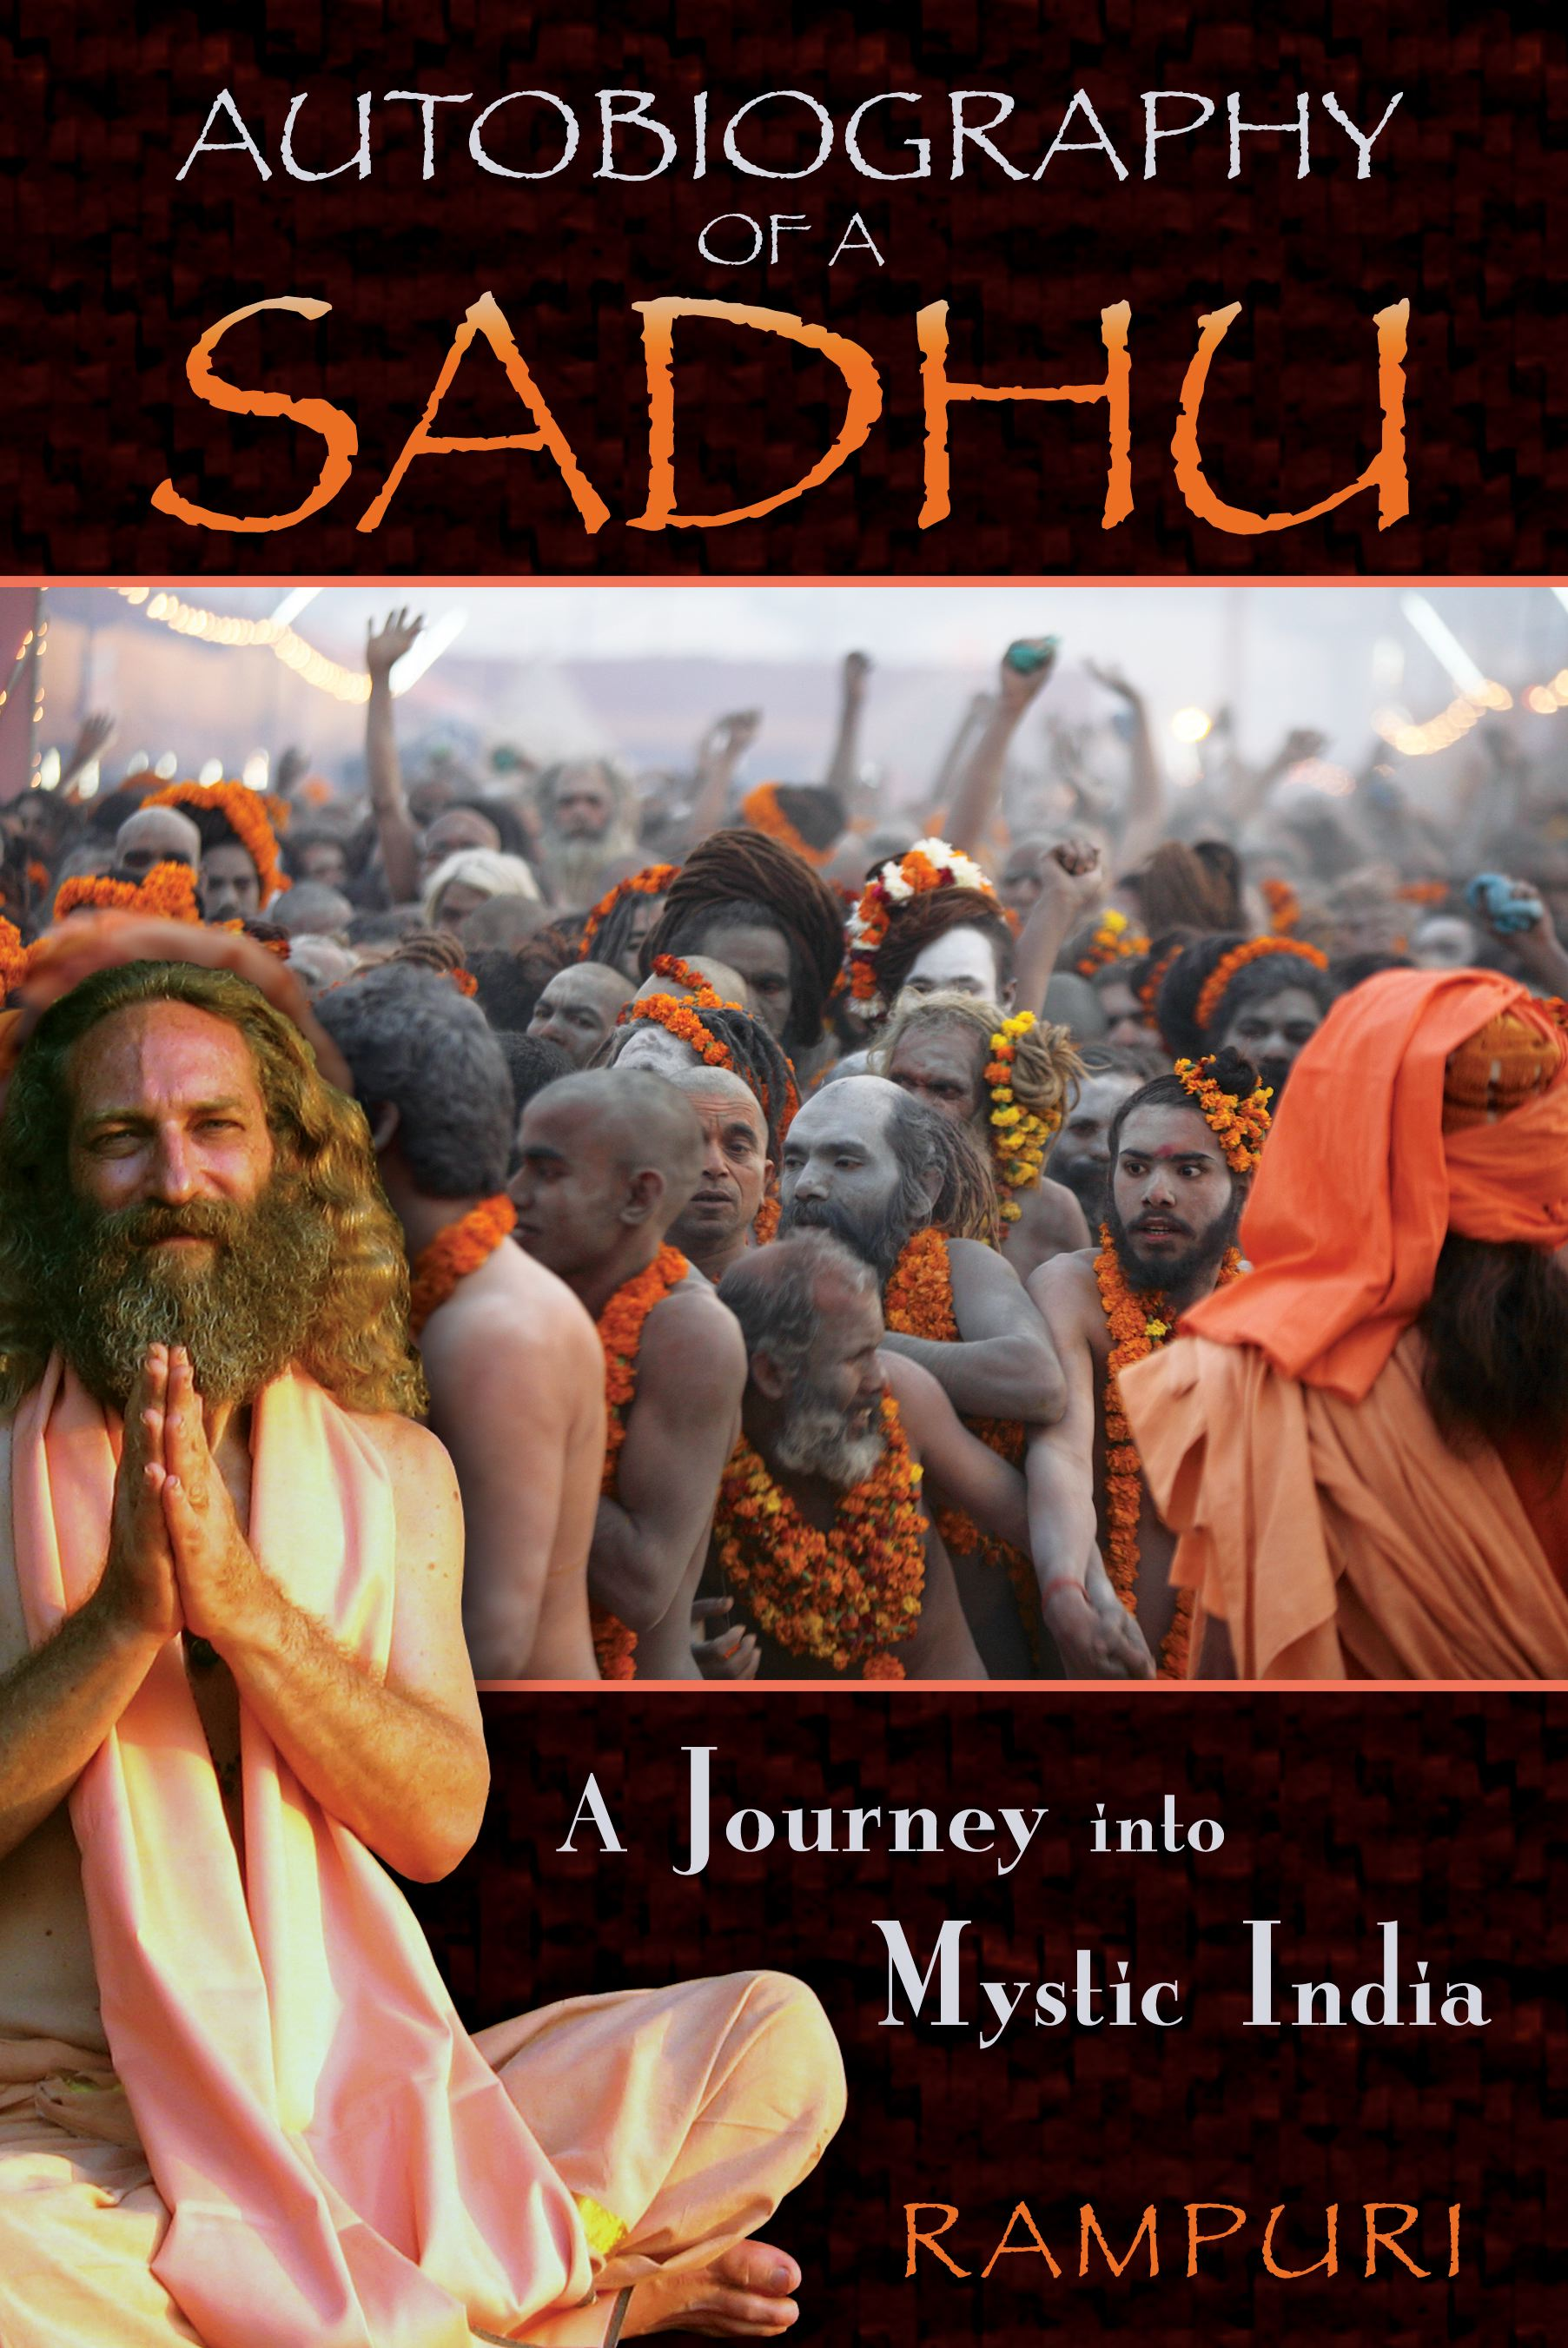 Autobiography of a sadhu 9781594773303 hr